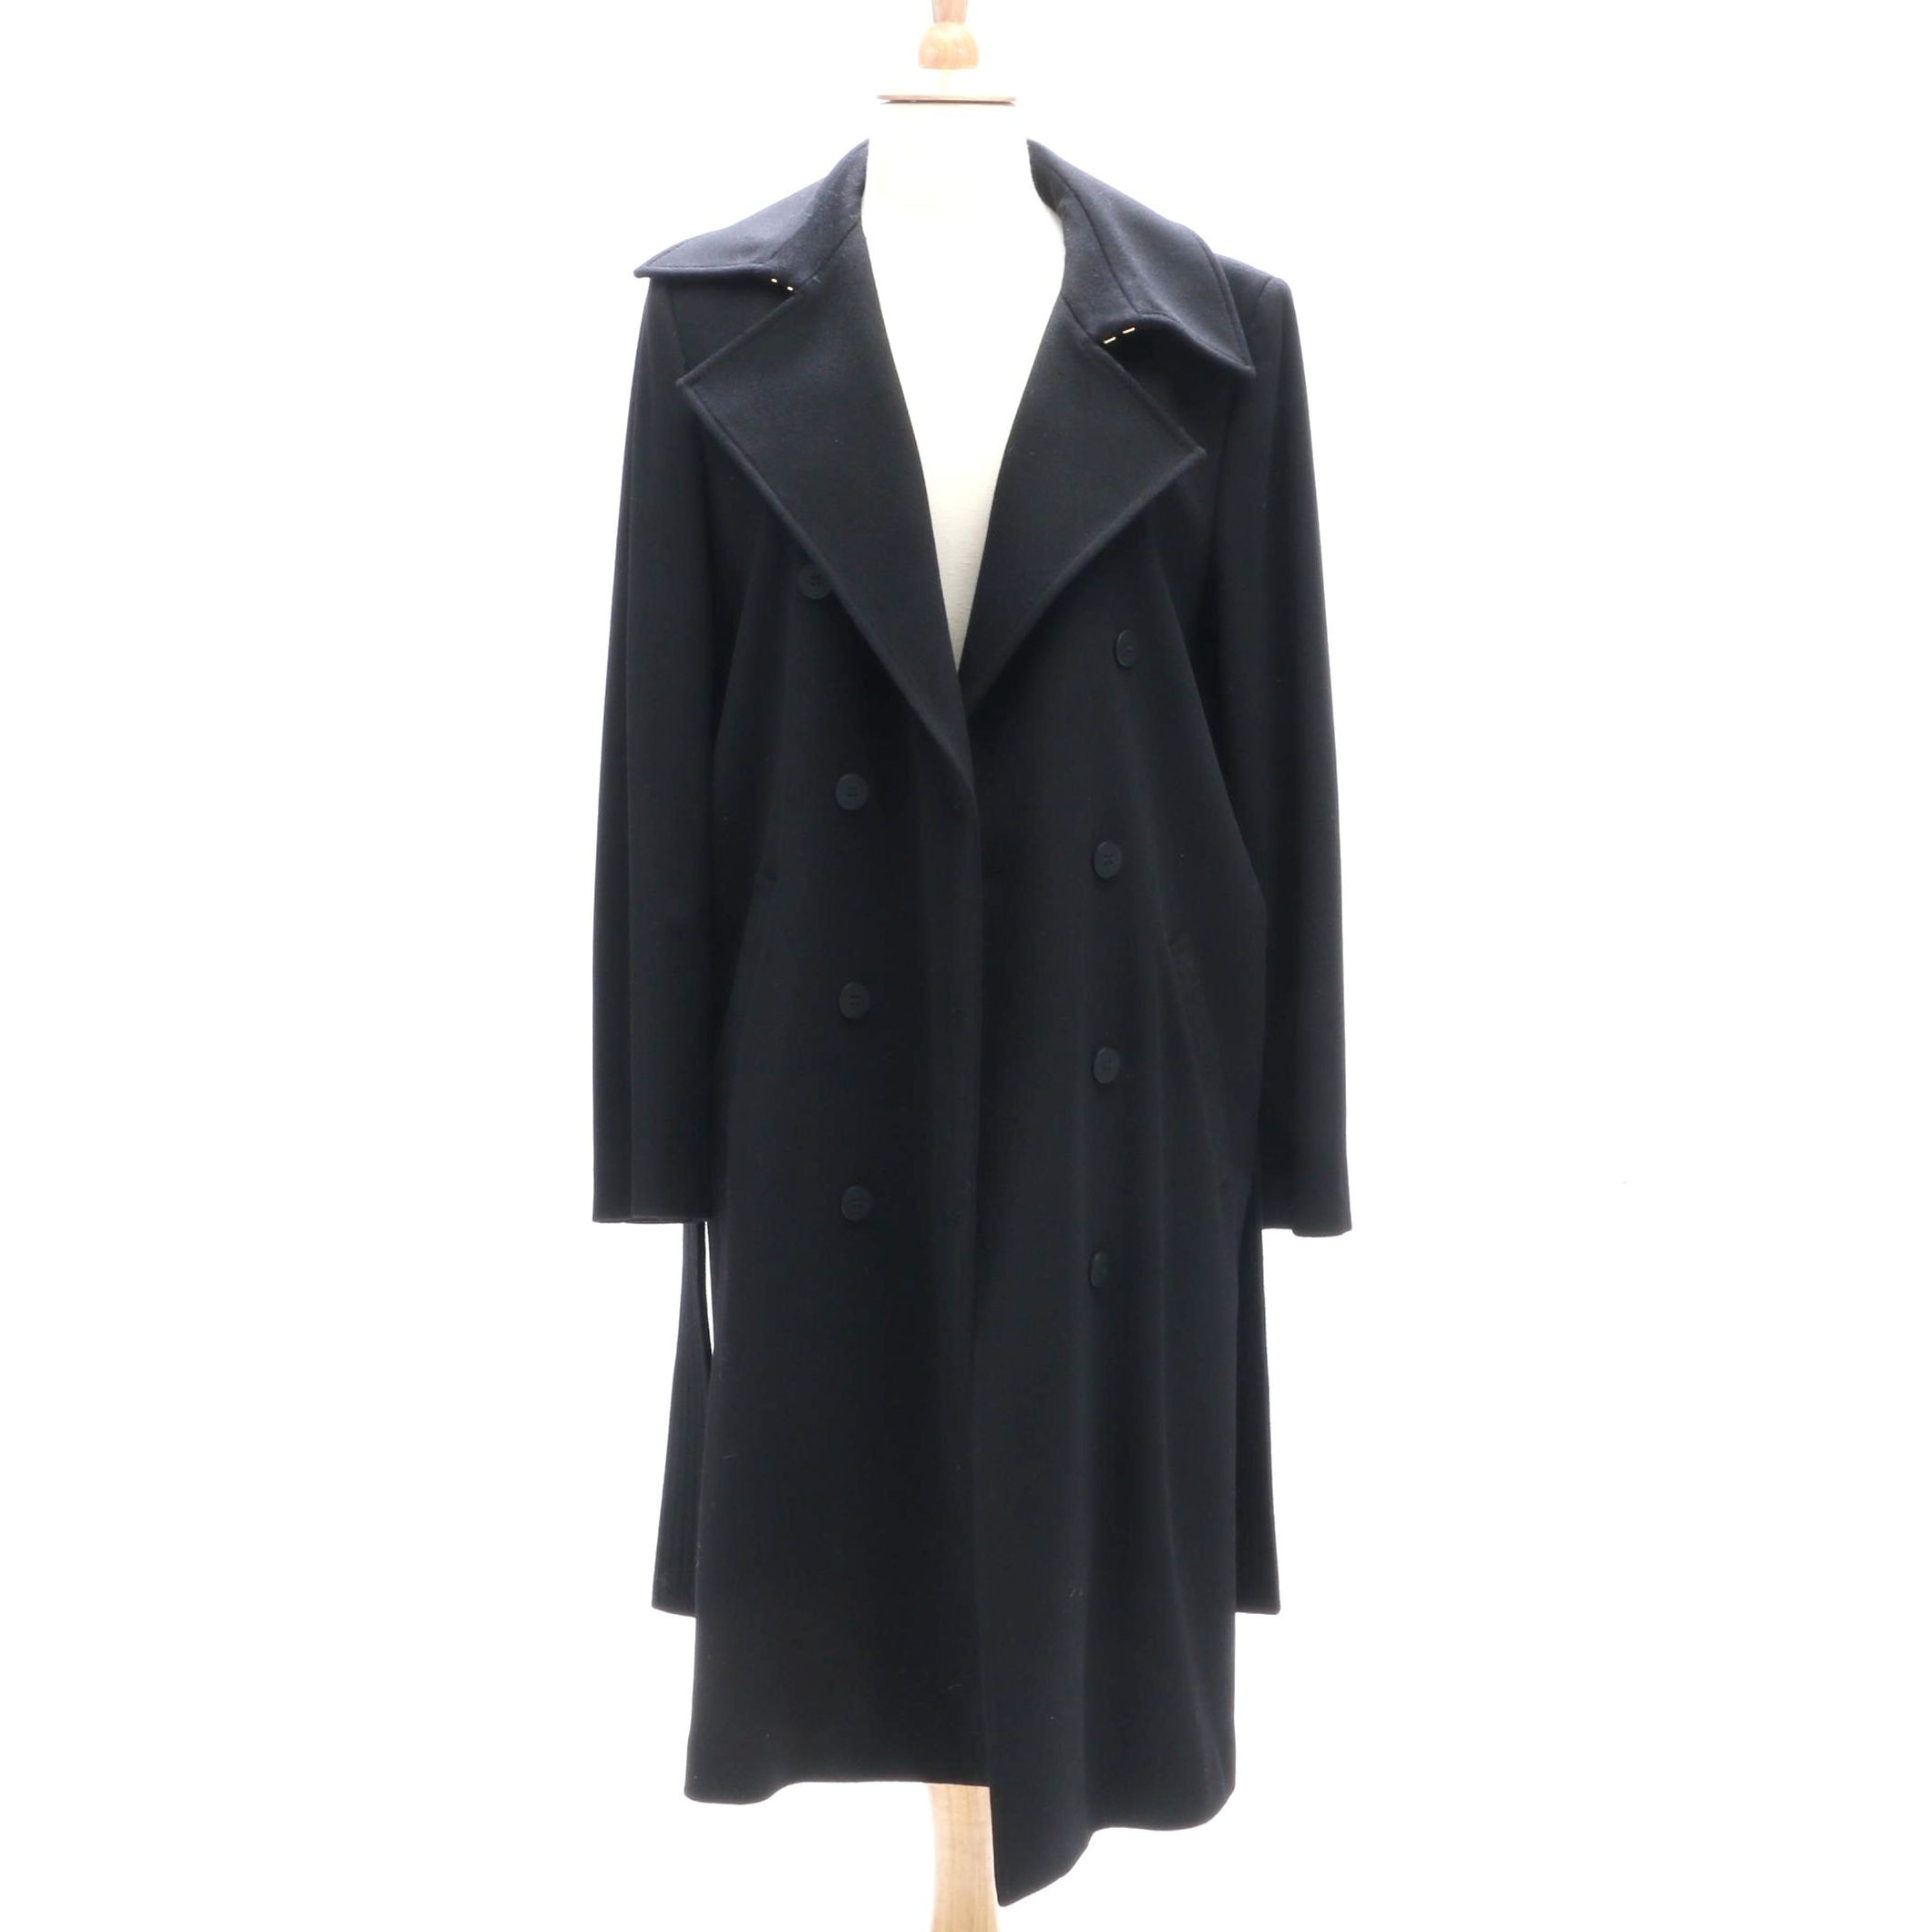 Les Copains Black Wool Double-Breasted Trench Coat